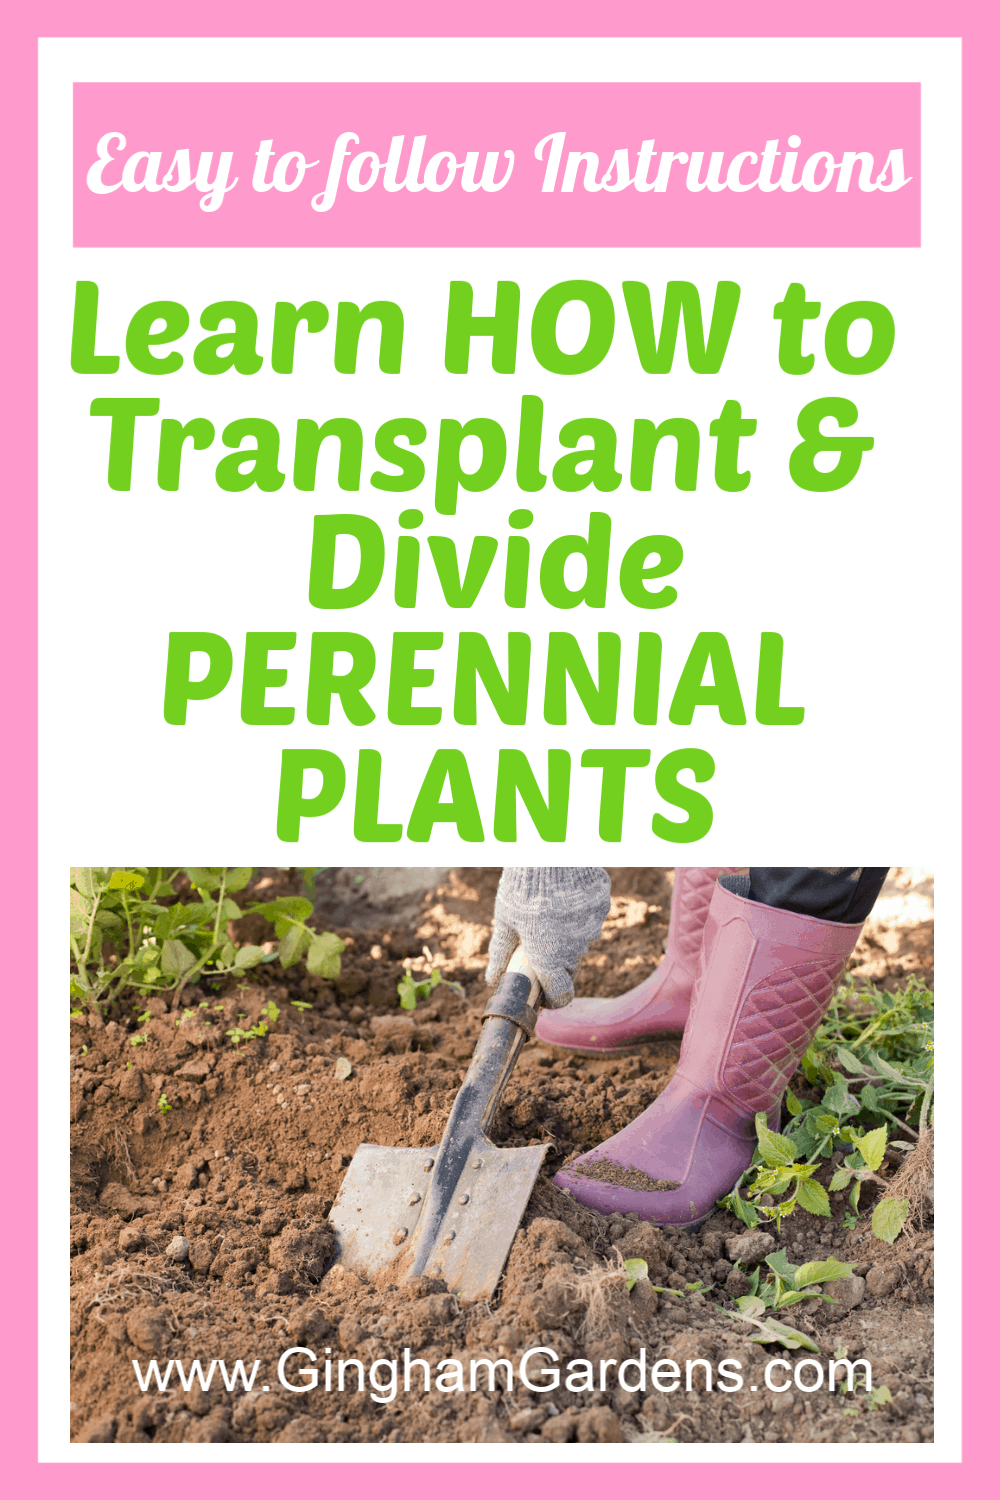 Image of a Gardener with text overlay - learn hoe to divide and transplant perennial plants